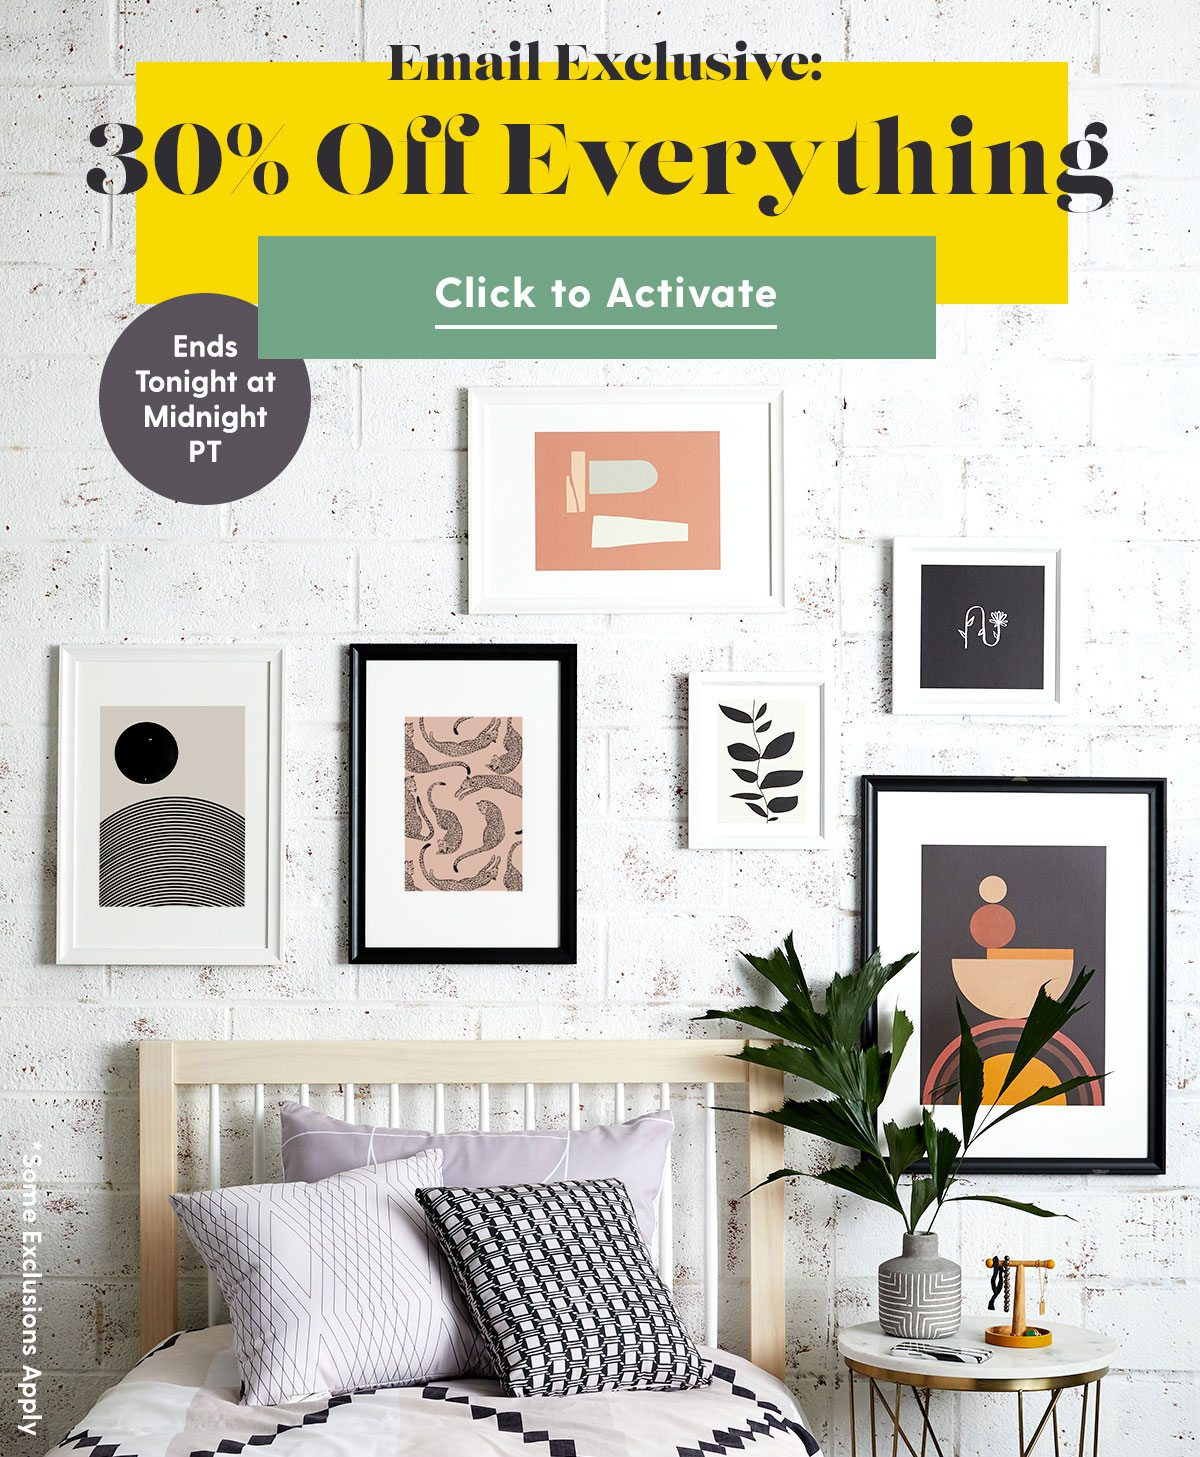 Email Exclusive: 30% Off Everything Ends Tonight at Midnight PT *Some Exclusions Apply CTA: Click to Activate >